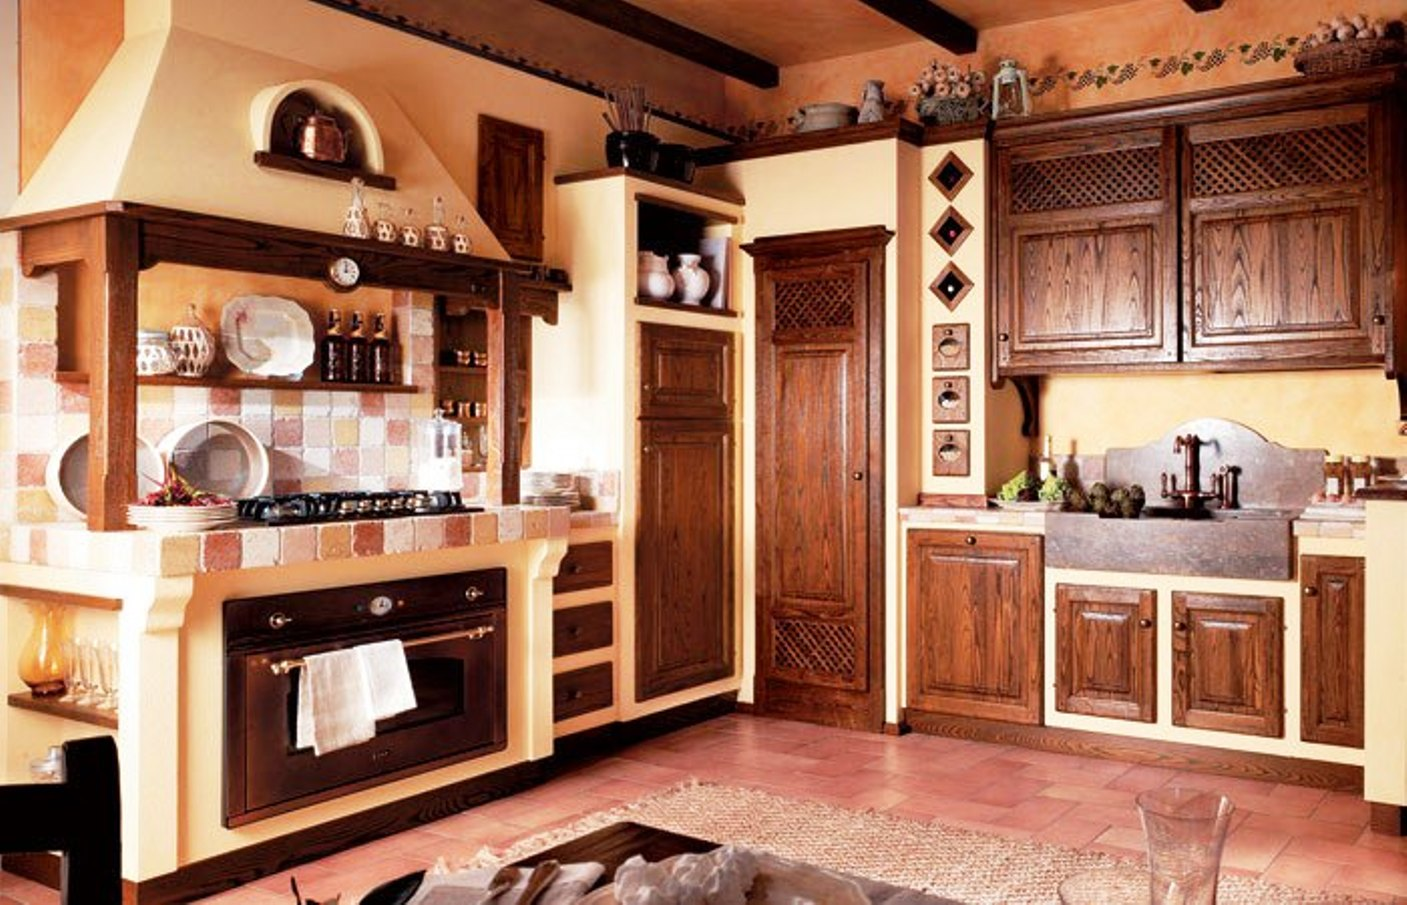 Cucine country in muratura ua84 regardsdefemmes for Cucine in muratura rustiche foto